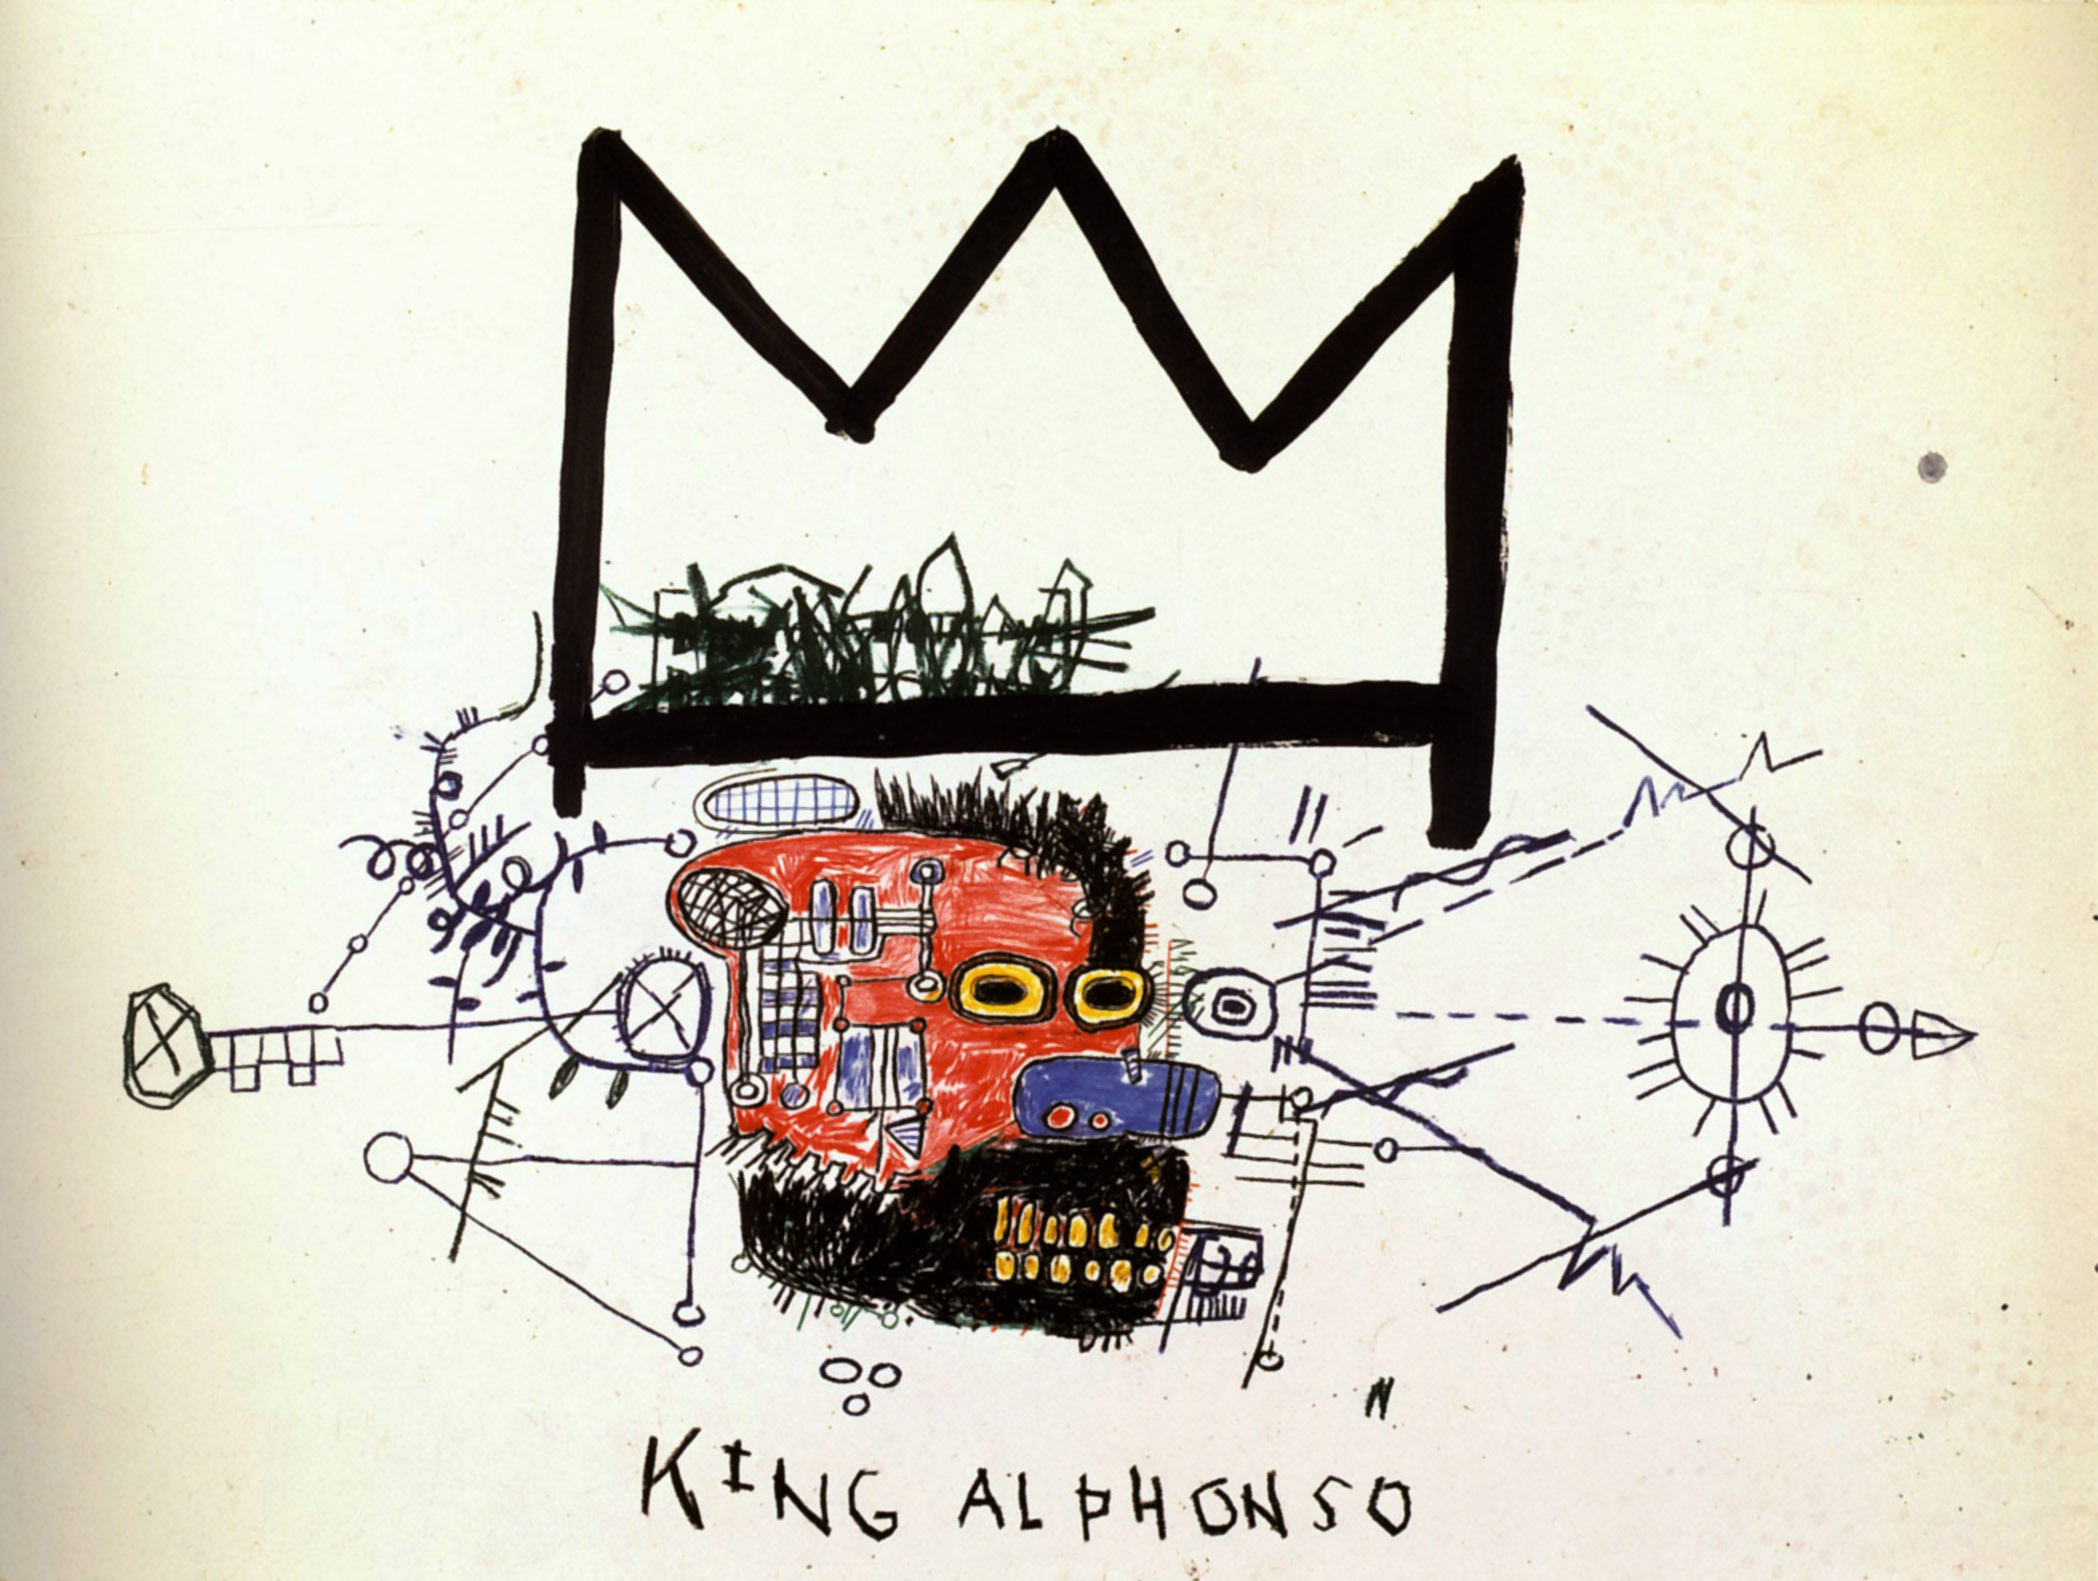 King Alphonso - Jean-Michel Basquiat - WikiPaintings.